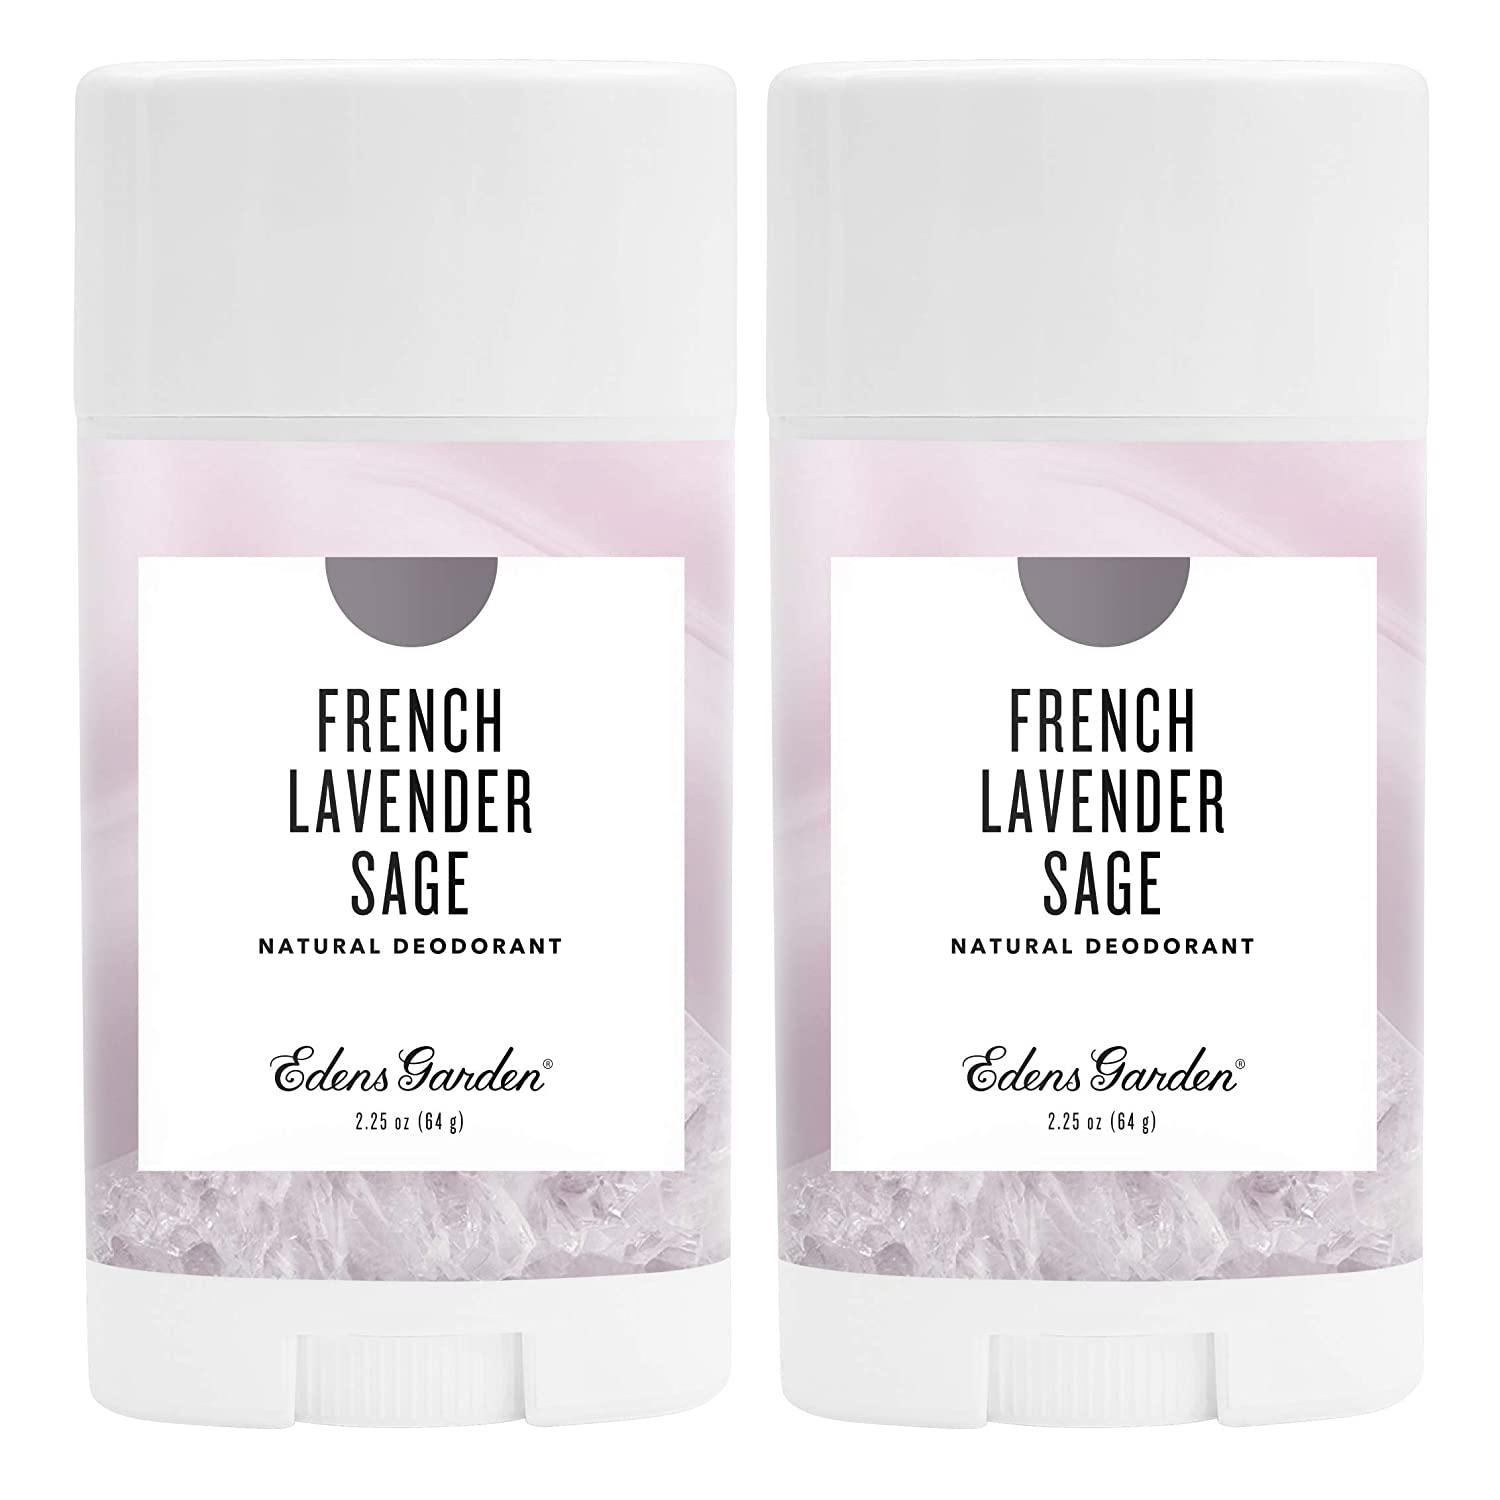 Edens Garden French Lavender Sage Natural Deodorant, Aluminum & Baking Soda Free (For Normal & Sensitive Skin), Made With Essential Oils, Vegan, For Men & Women, 2.25 oz Value Pack